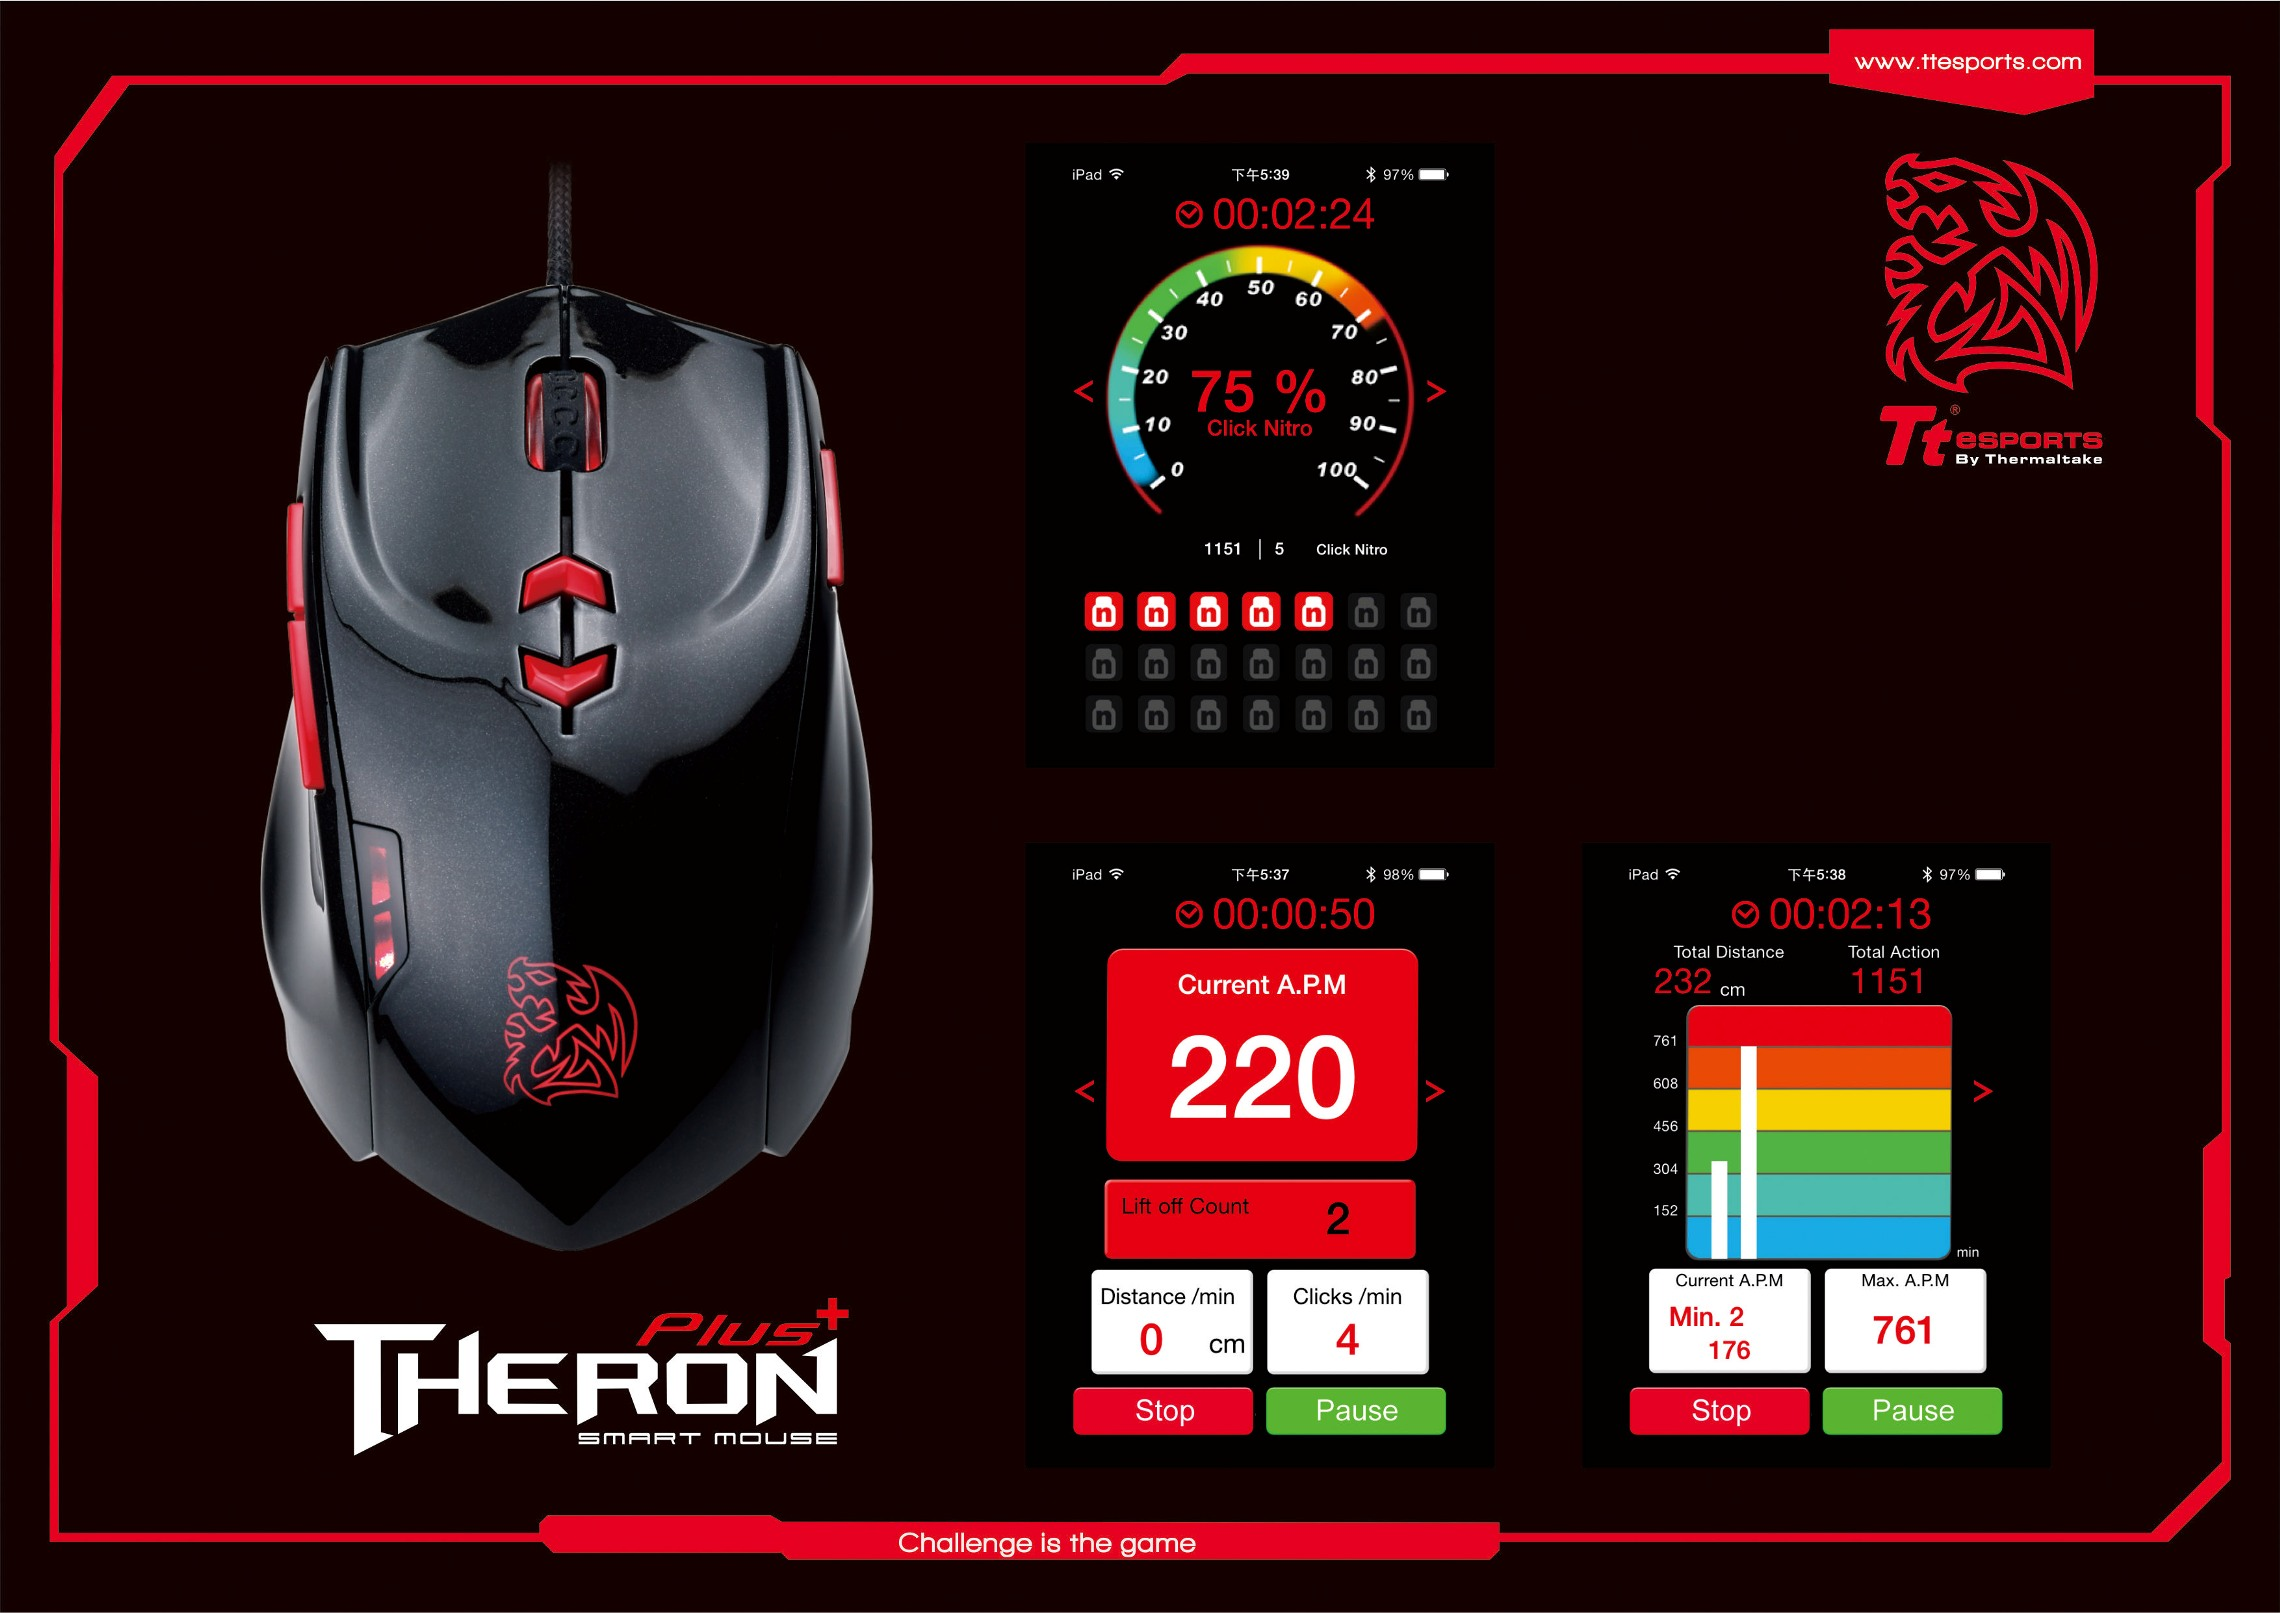 13c3b321c98 Taipei, Taiwan – June 3, 2014 –For COMPUTEX Taipei 2014 Tt eSPORTS is  prepared to unveil a slew of new exciting gaming peripherals.